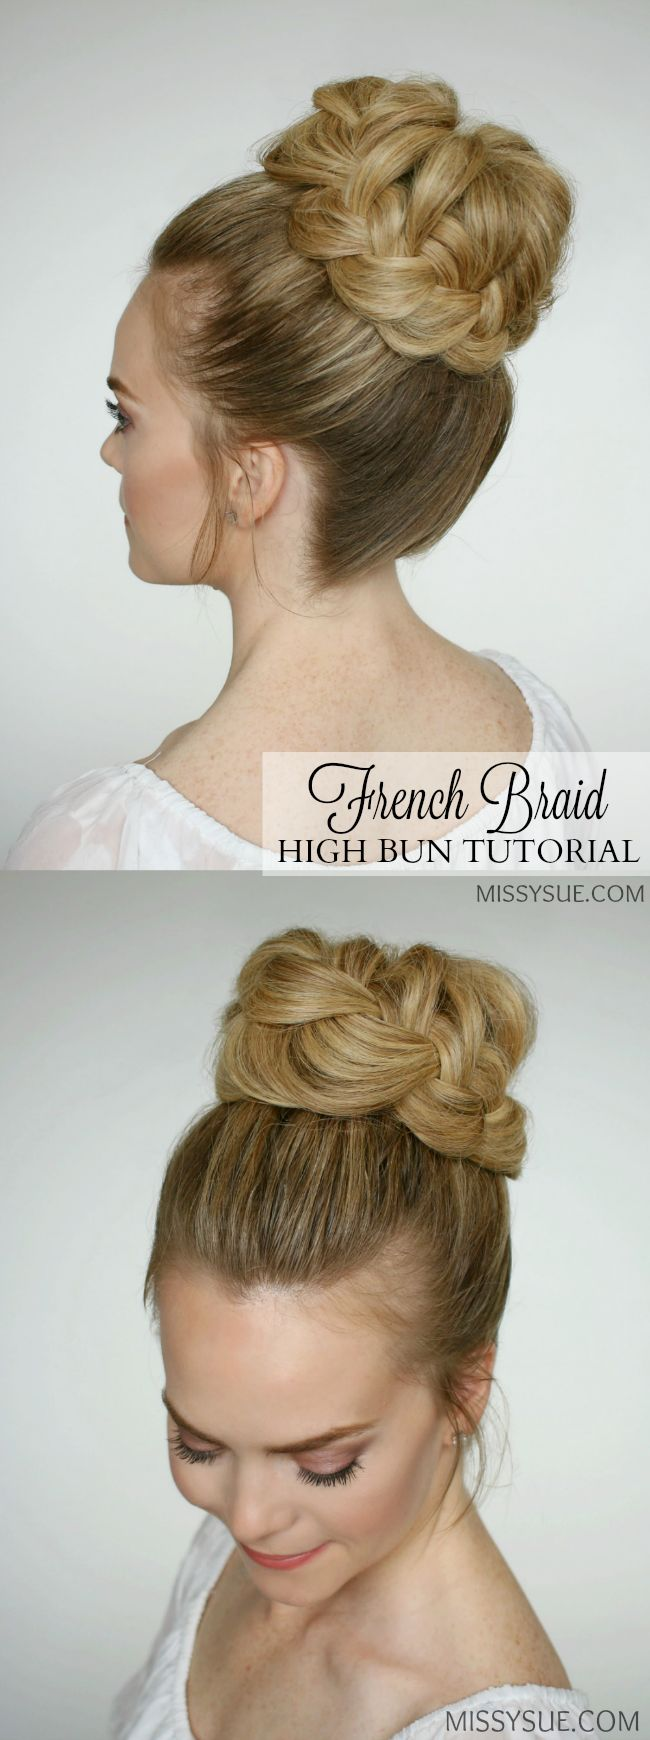 Prom and bridal season are here and I am so excited to be featuring a tutorial for this hairstyle. I've seen it before on younger girls but think it is a perfect style for a more formal occasion. High buns are so chic and I know…